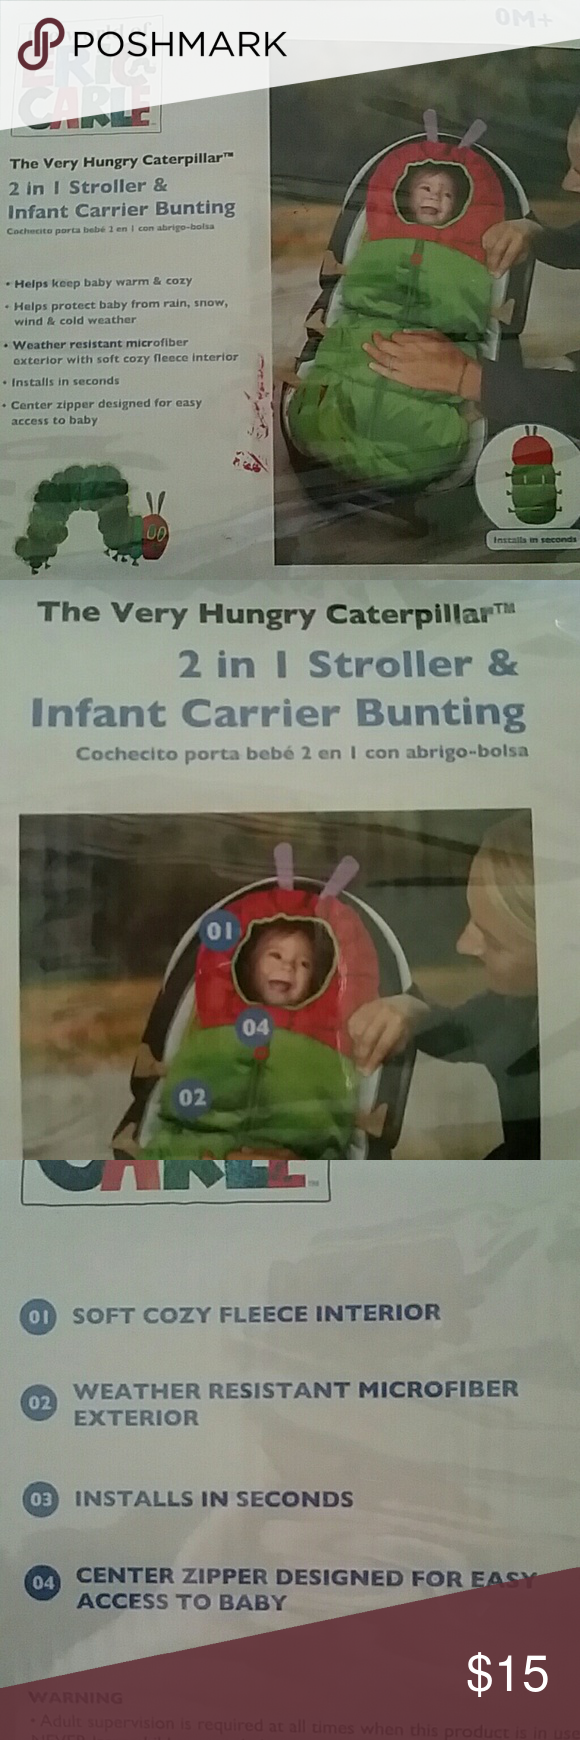 2 in 1 stroller and infant carrier bunting New, still in